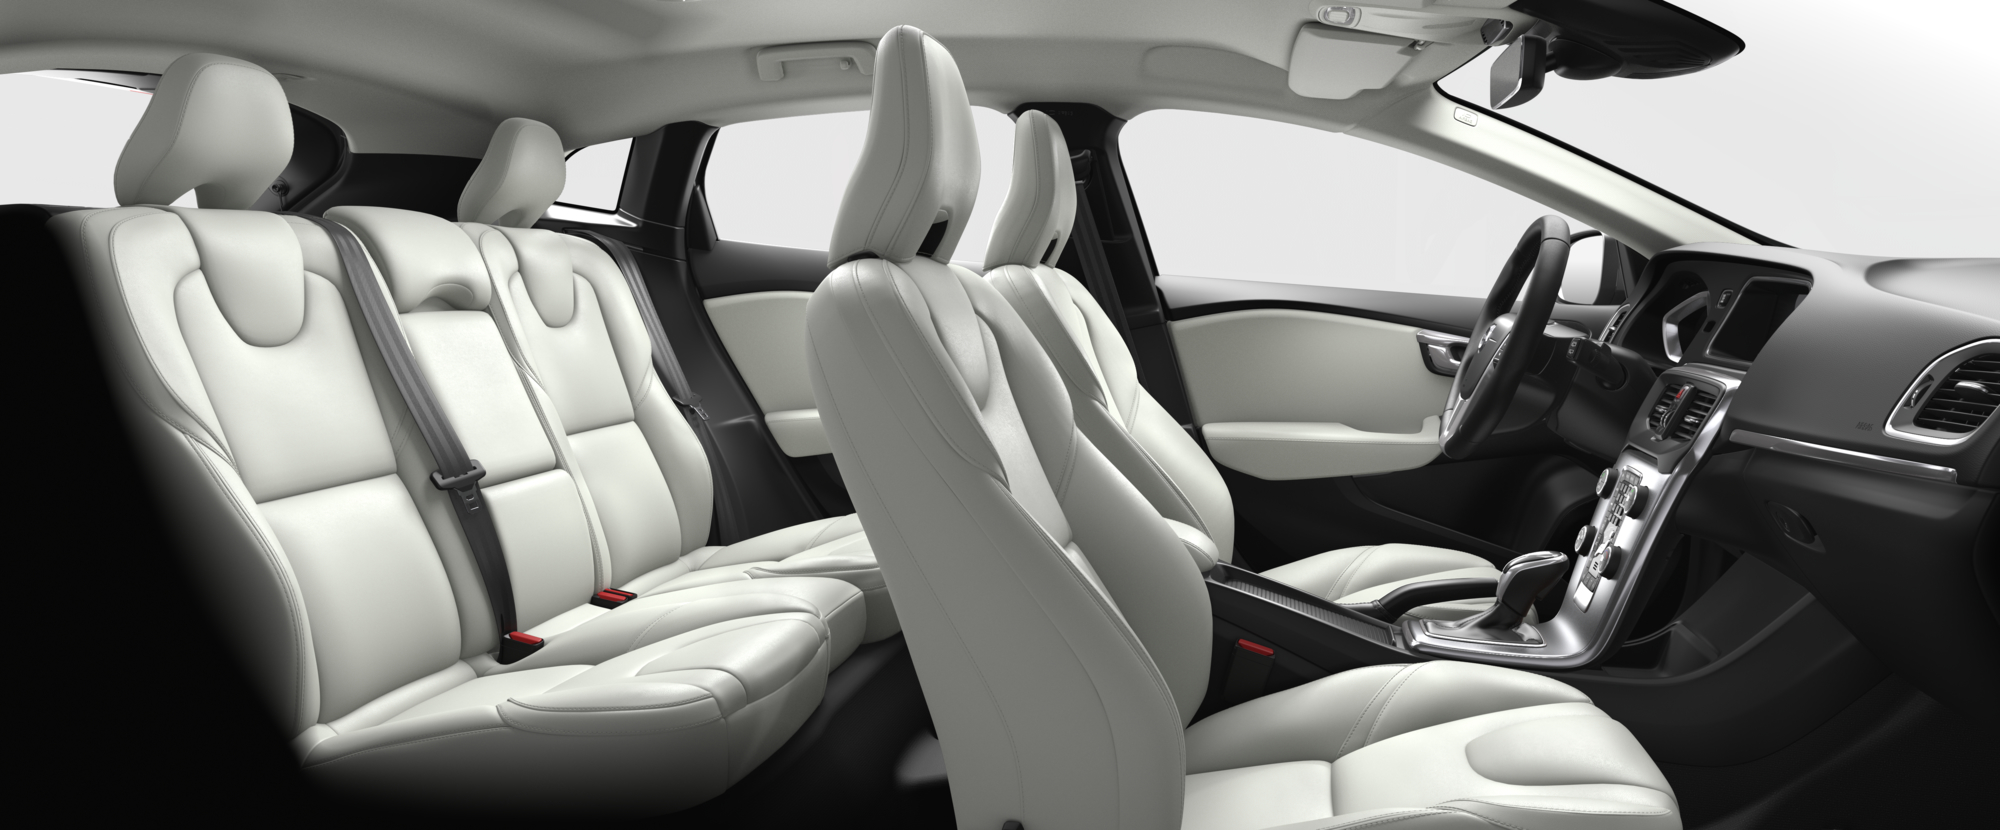 Interior shot of the Volvo V40 with Blond / Charcoal Leather Seats